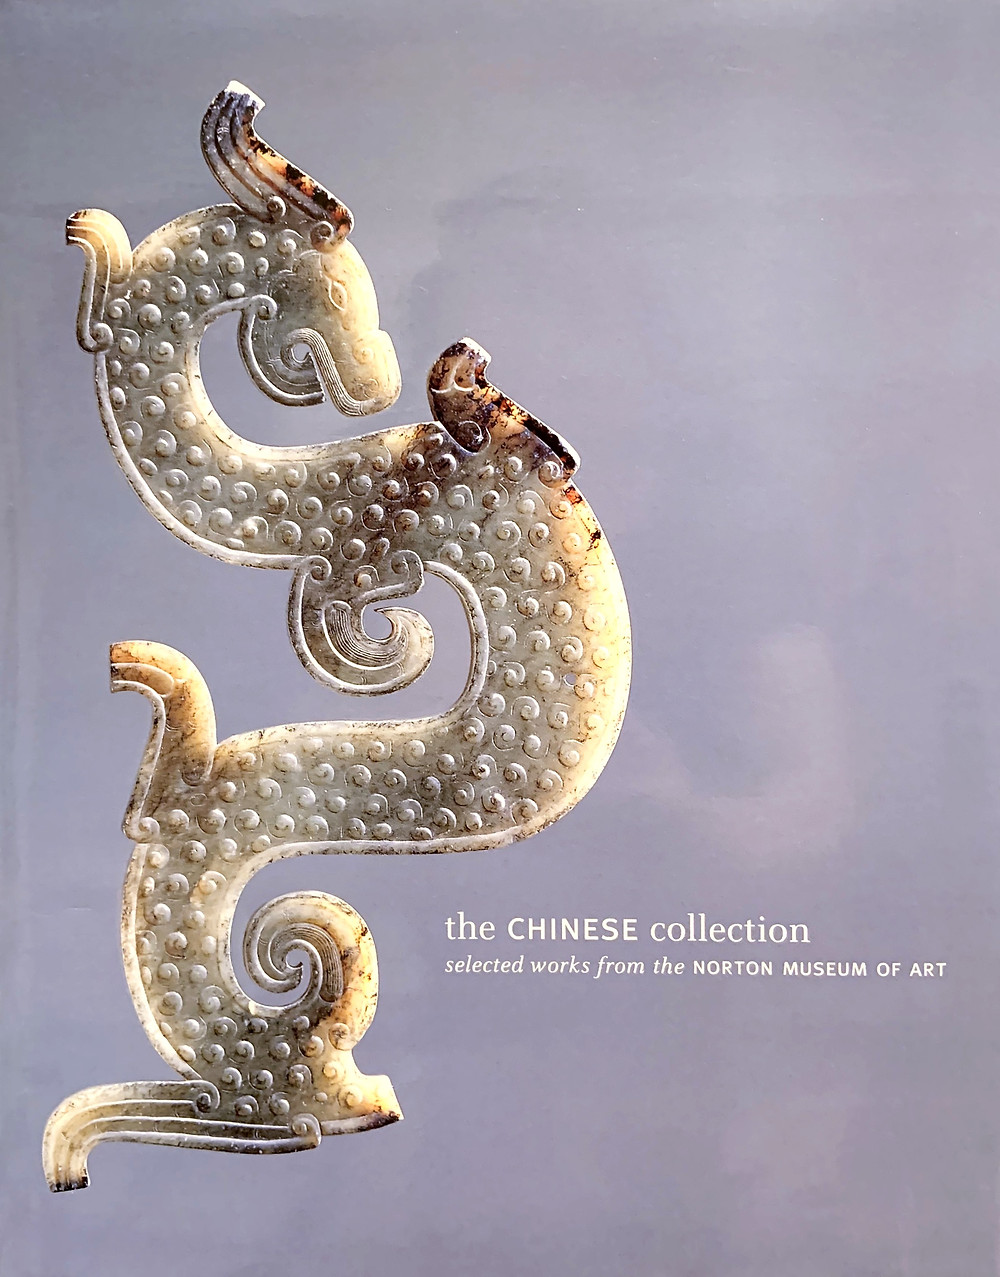 The Chinese Collection: Selected Works from the Norton Museum of Art